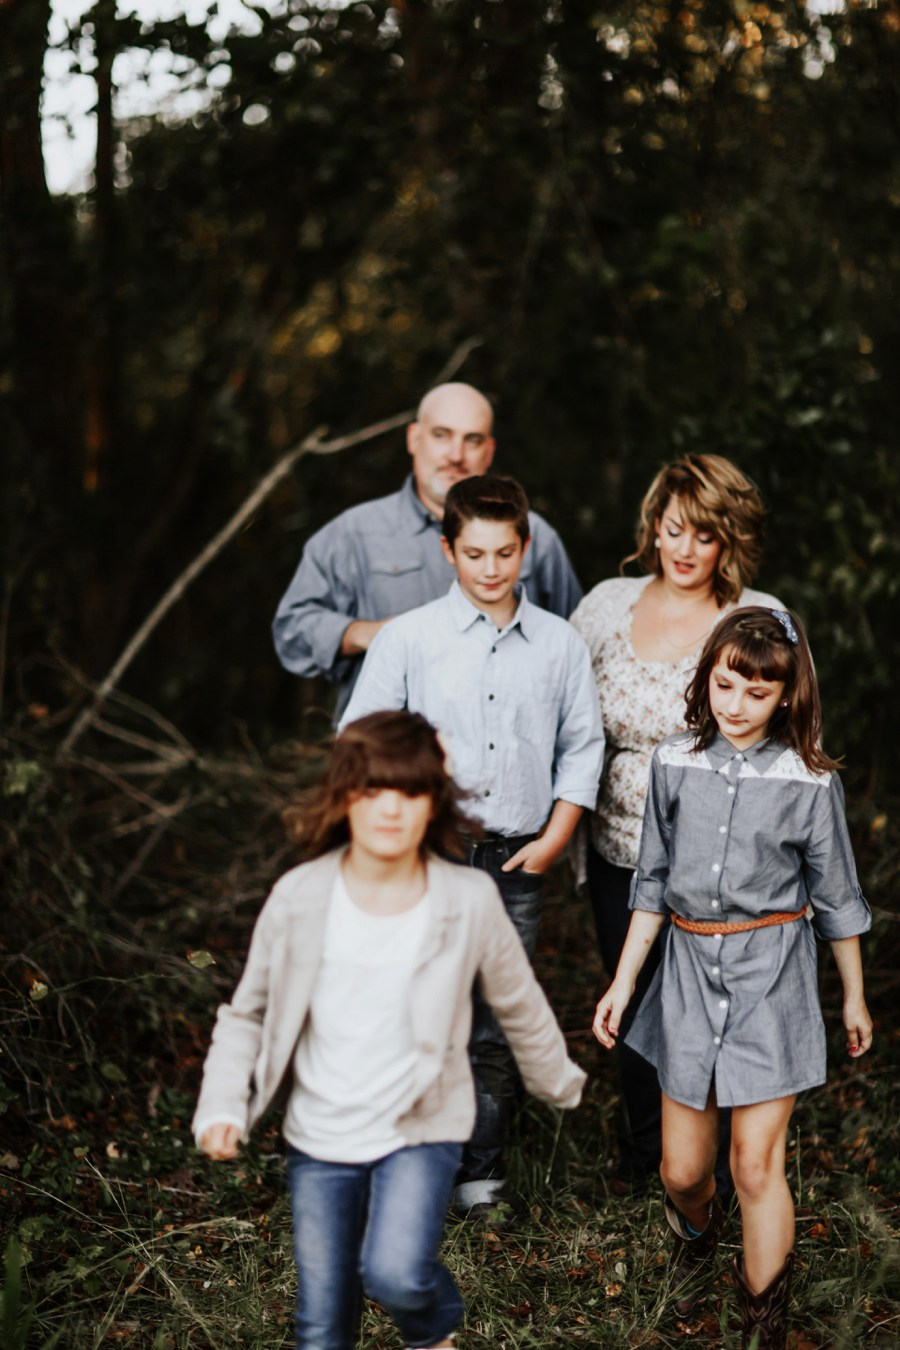 lifestyle_family_photographer_north_carolina_weaver_family_kandis_marino_photography_0022.jpg